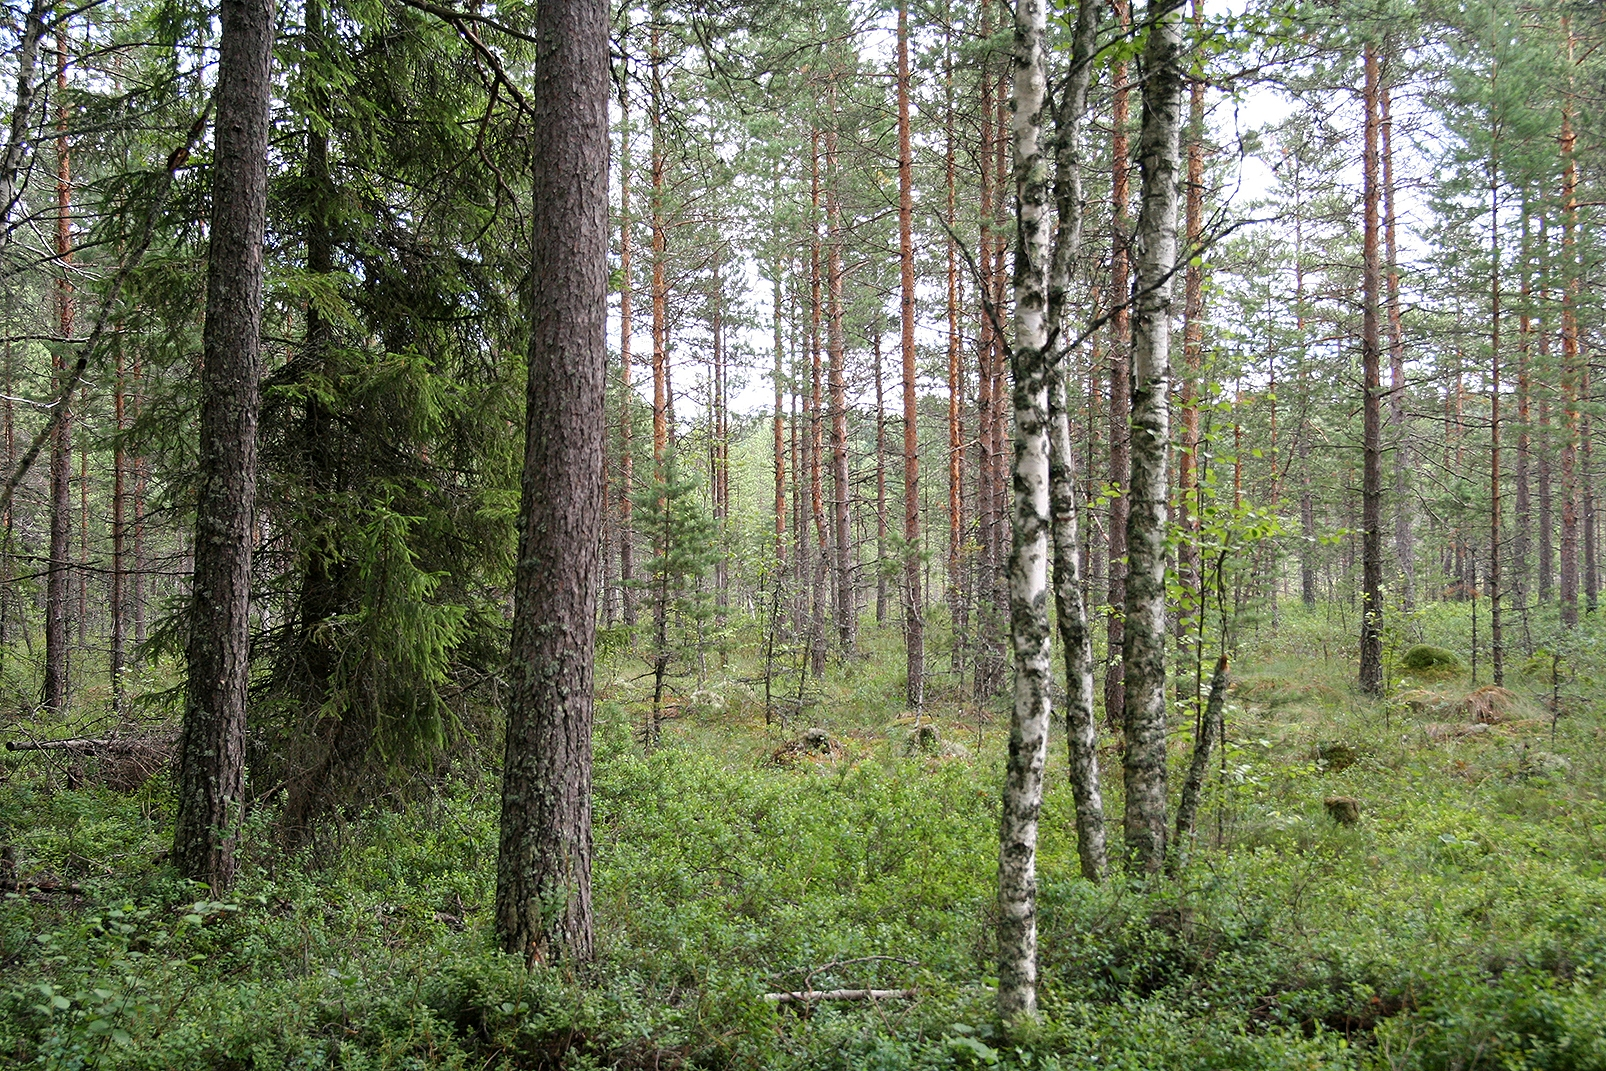 A minerotrophic mire changing towards an ombrotrophic bog, Finland. Photo: J. Päivänen